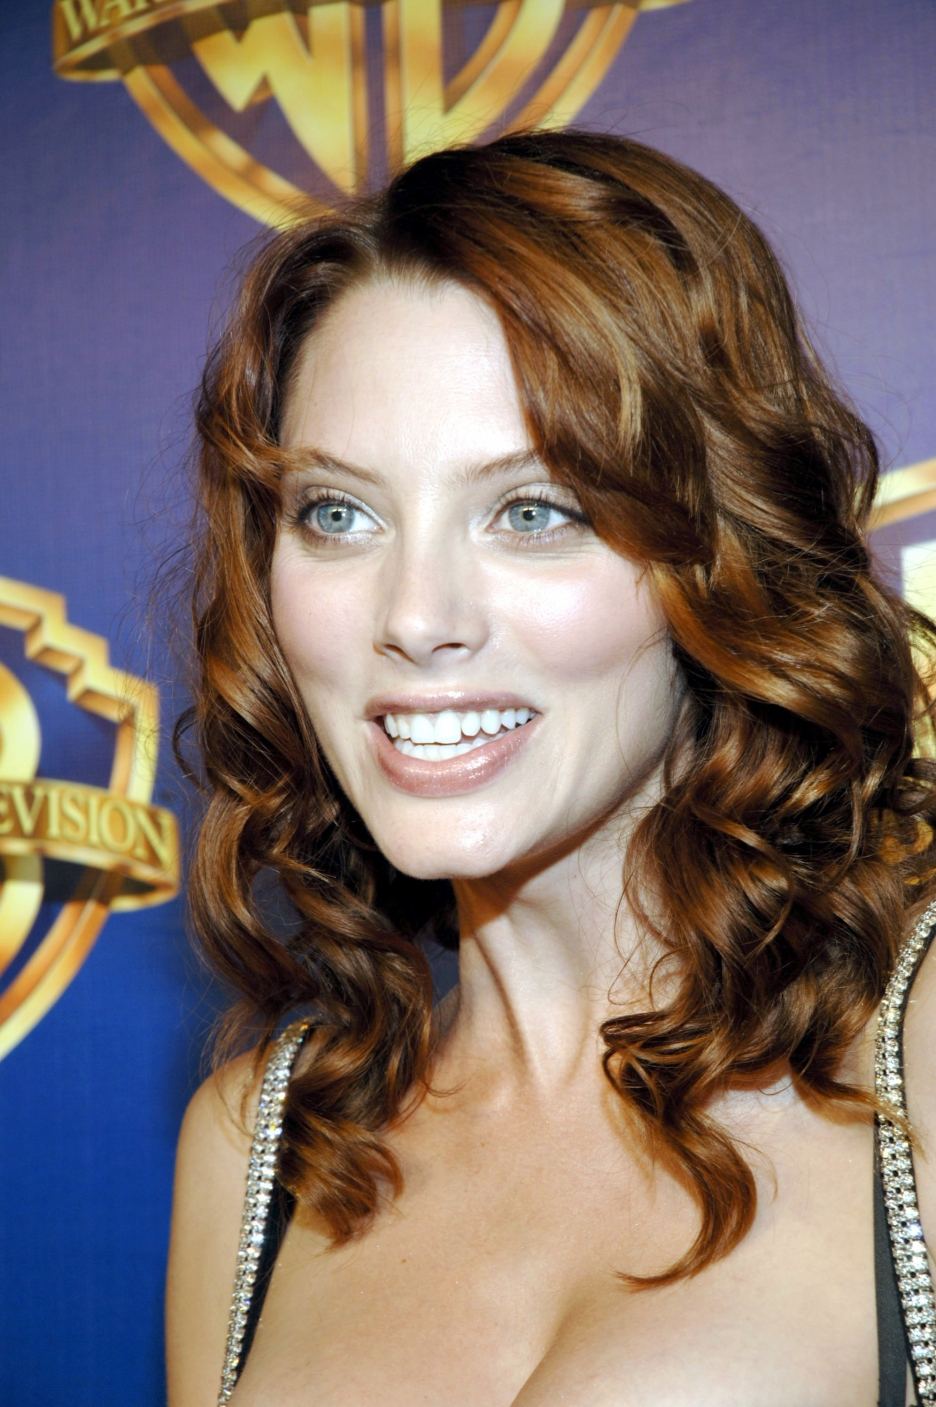 april bowlby nude pictures